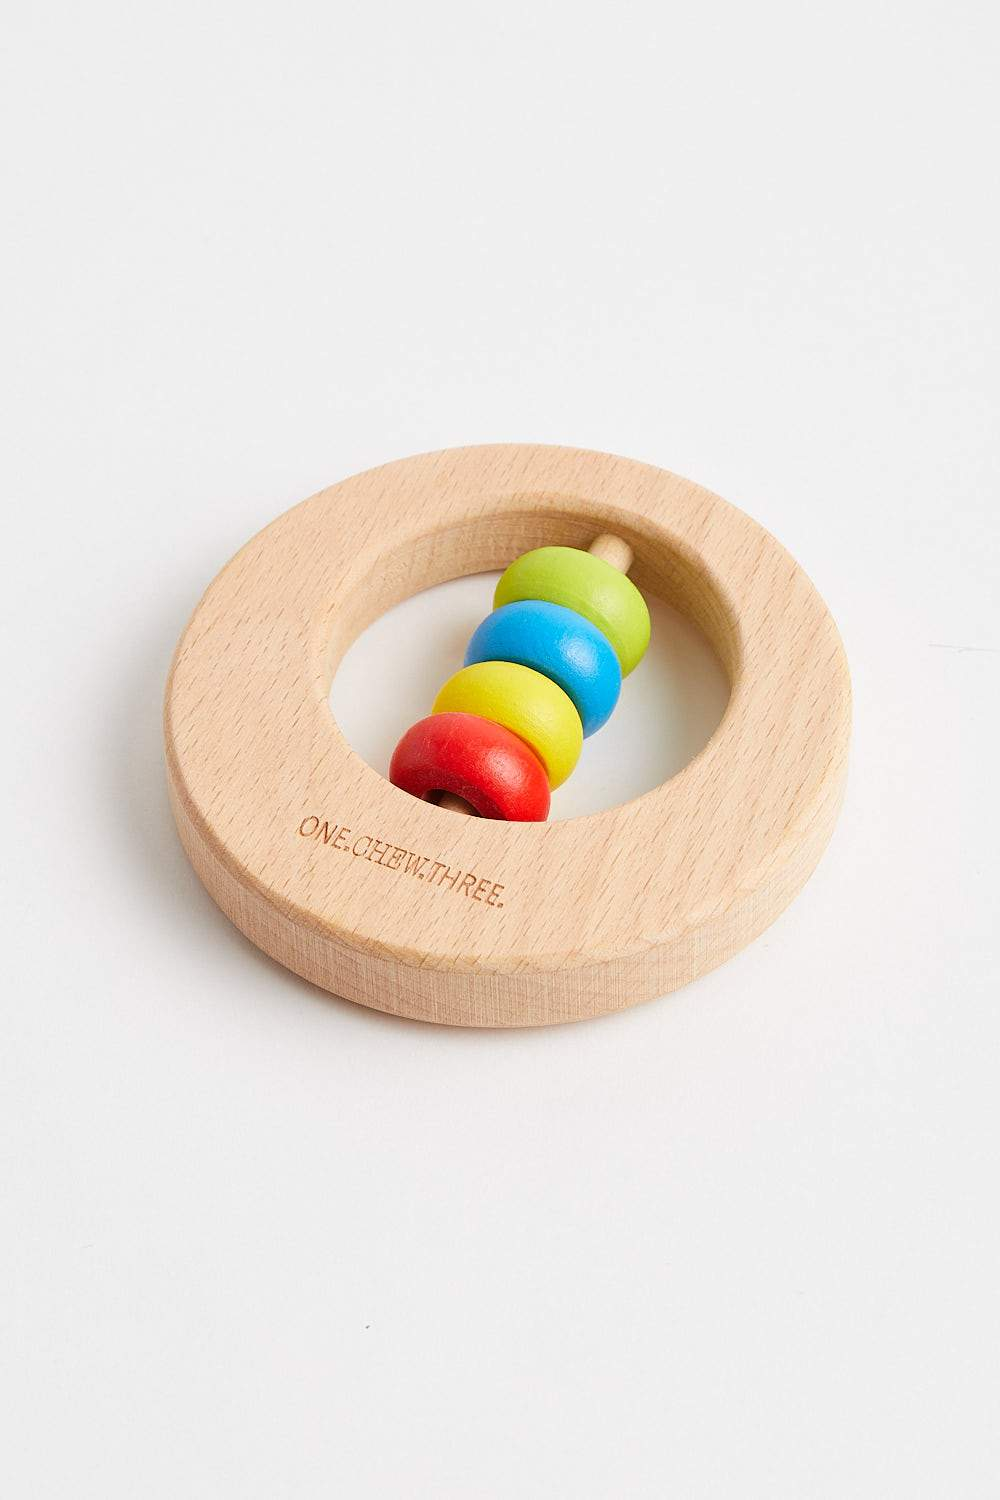 Premium Beech Wood Rattle Teether DISC (Rainbow Bright) Teether One Chew Three